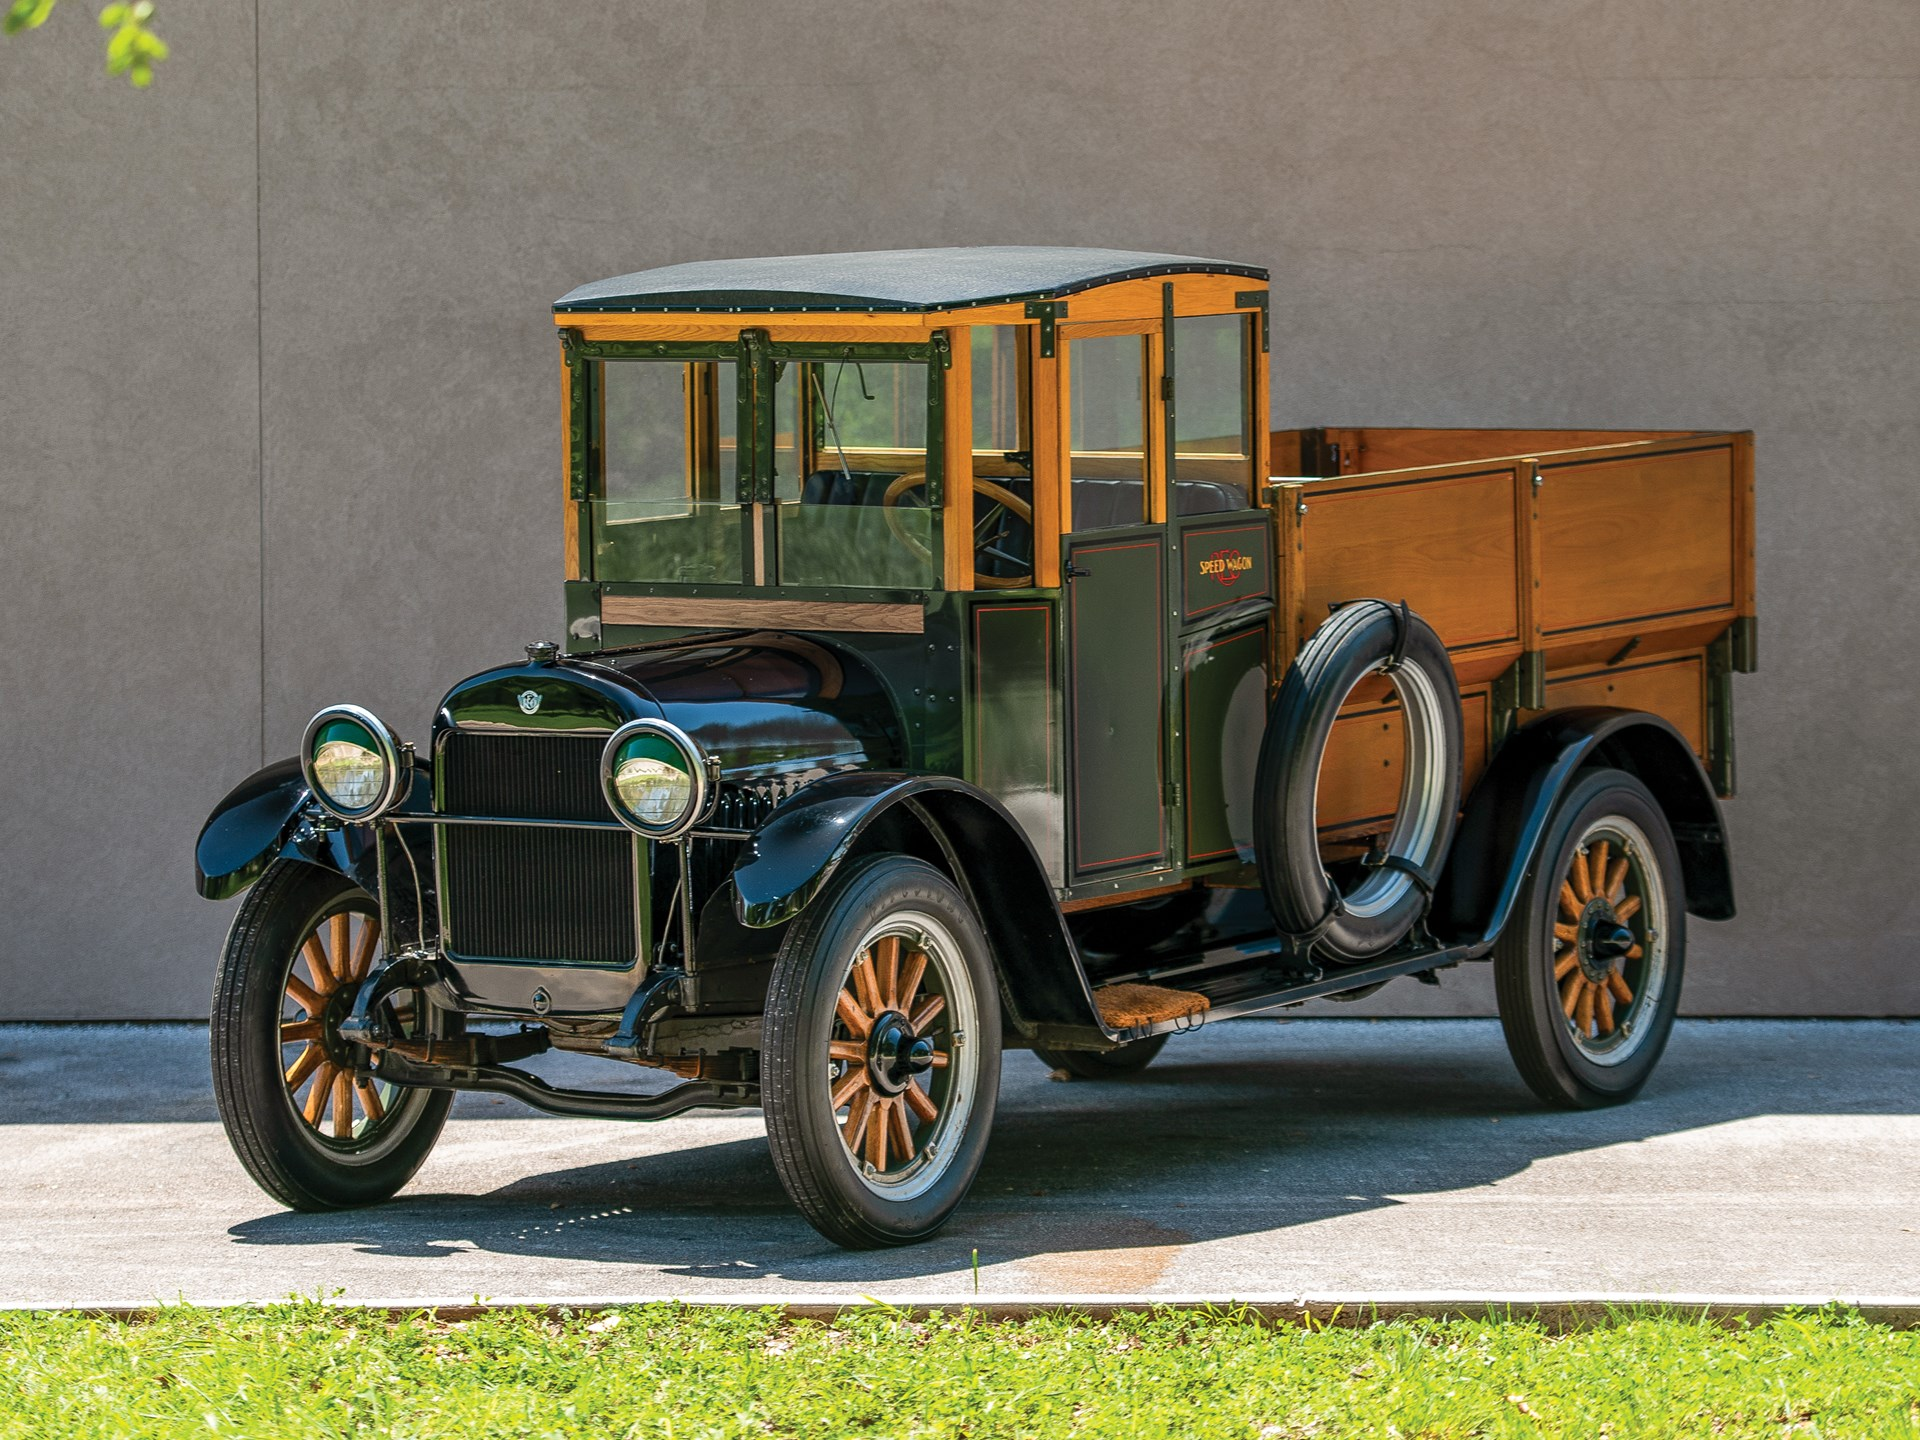 RM Sotheby's - 1926 Reo Model G Speed Wagon Delivery Truck